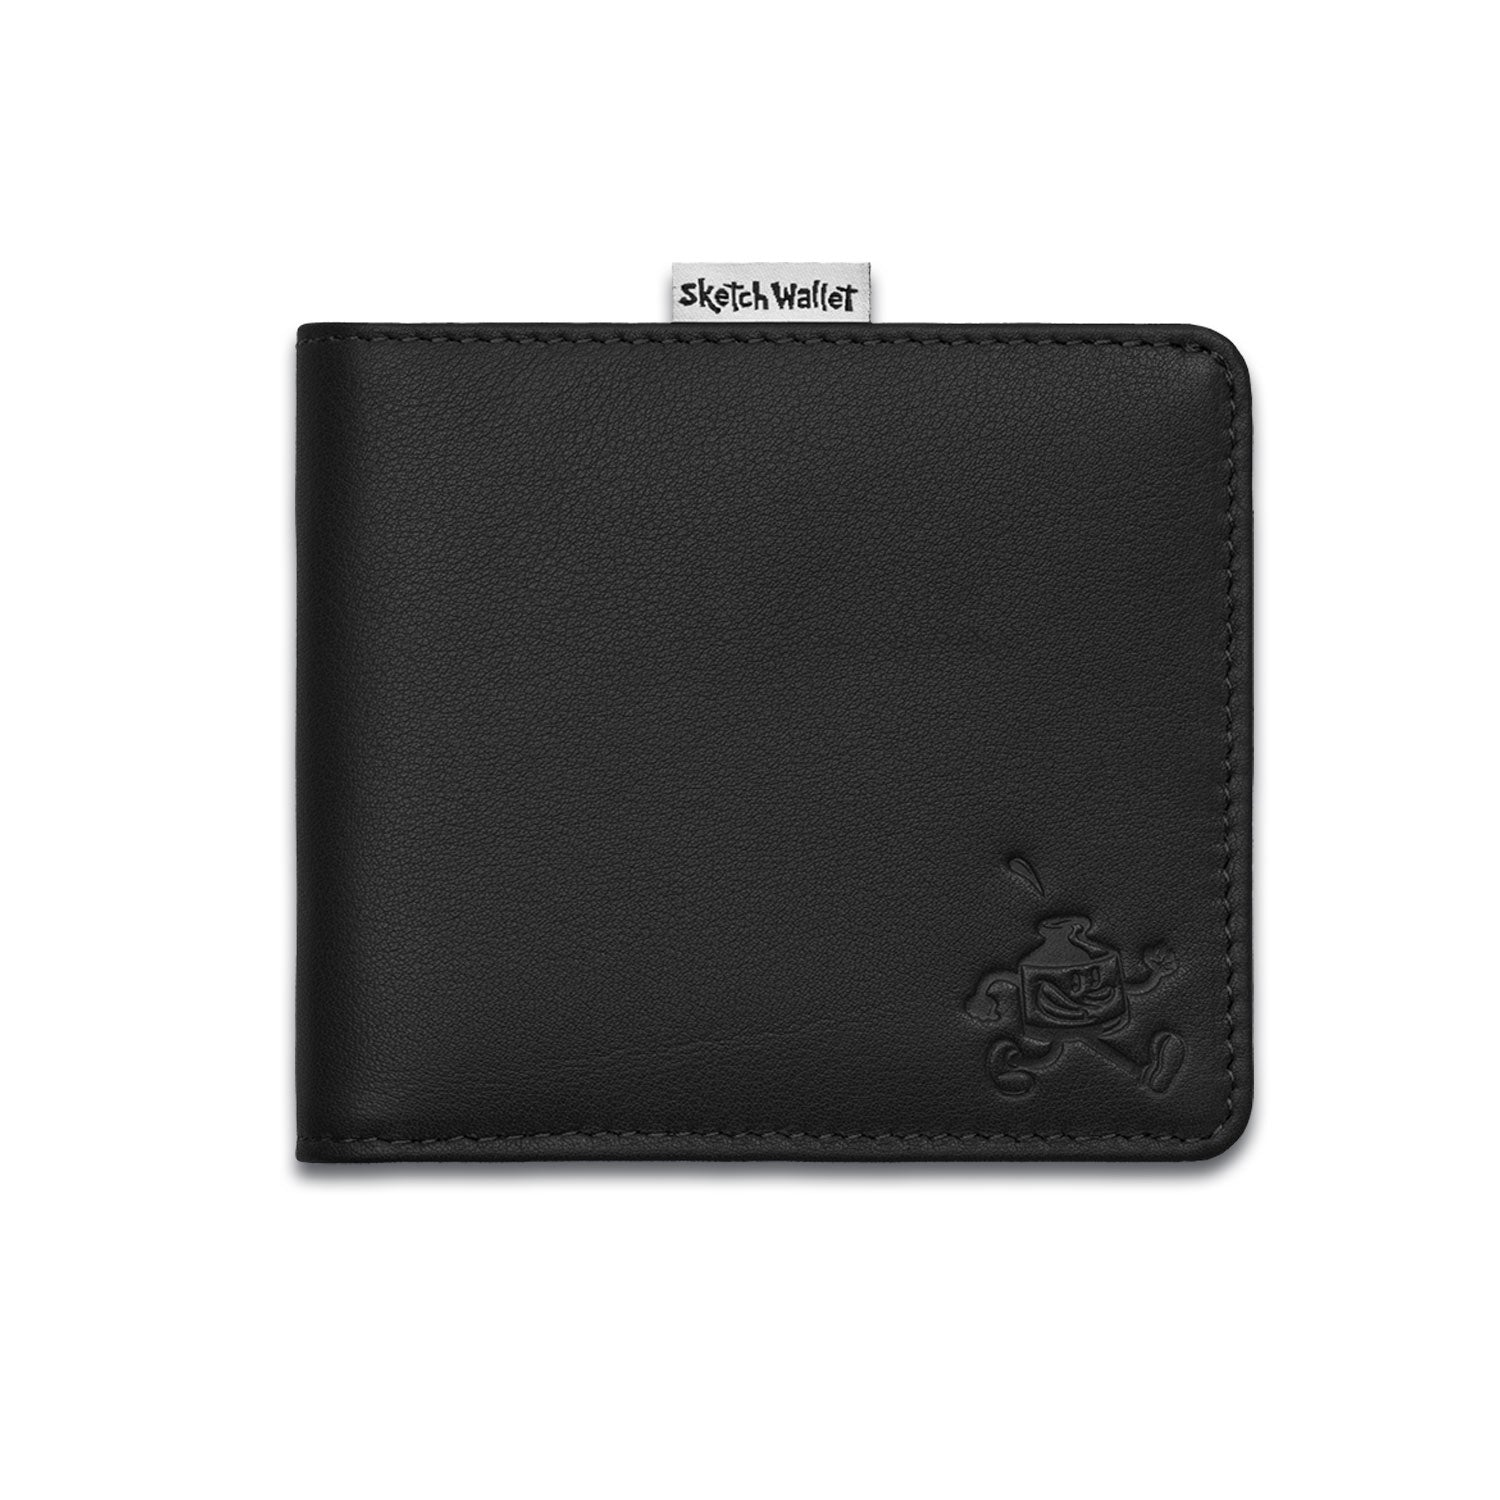 Sketch Wallet Medium Leather